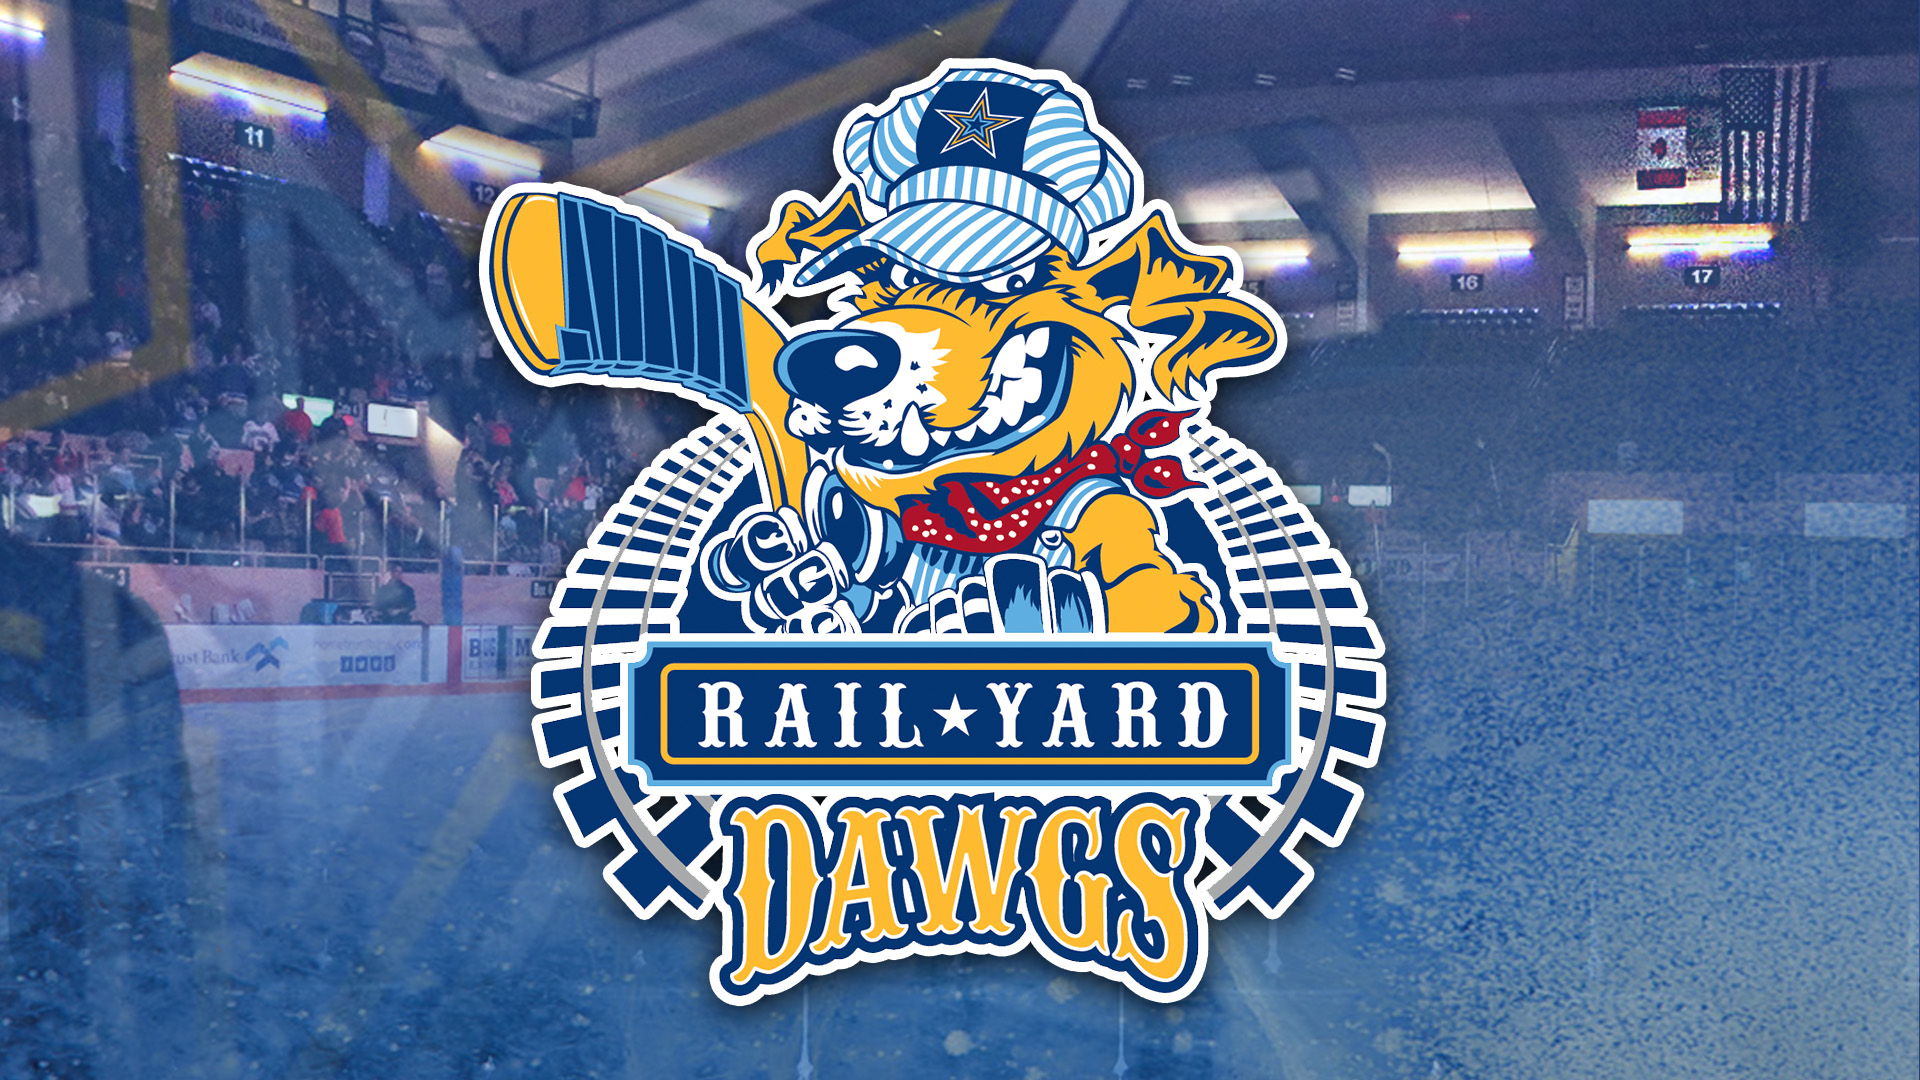 Rail Yard Dawgs vs Ice Bears